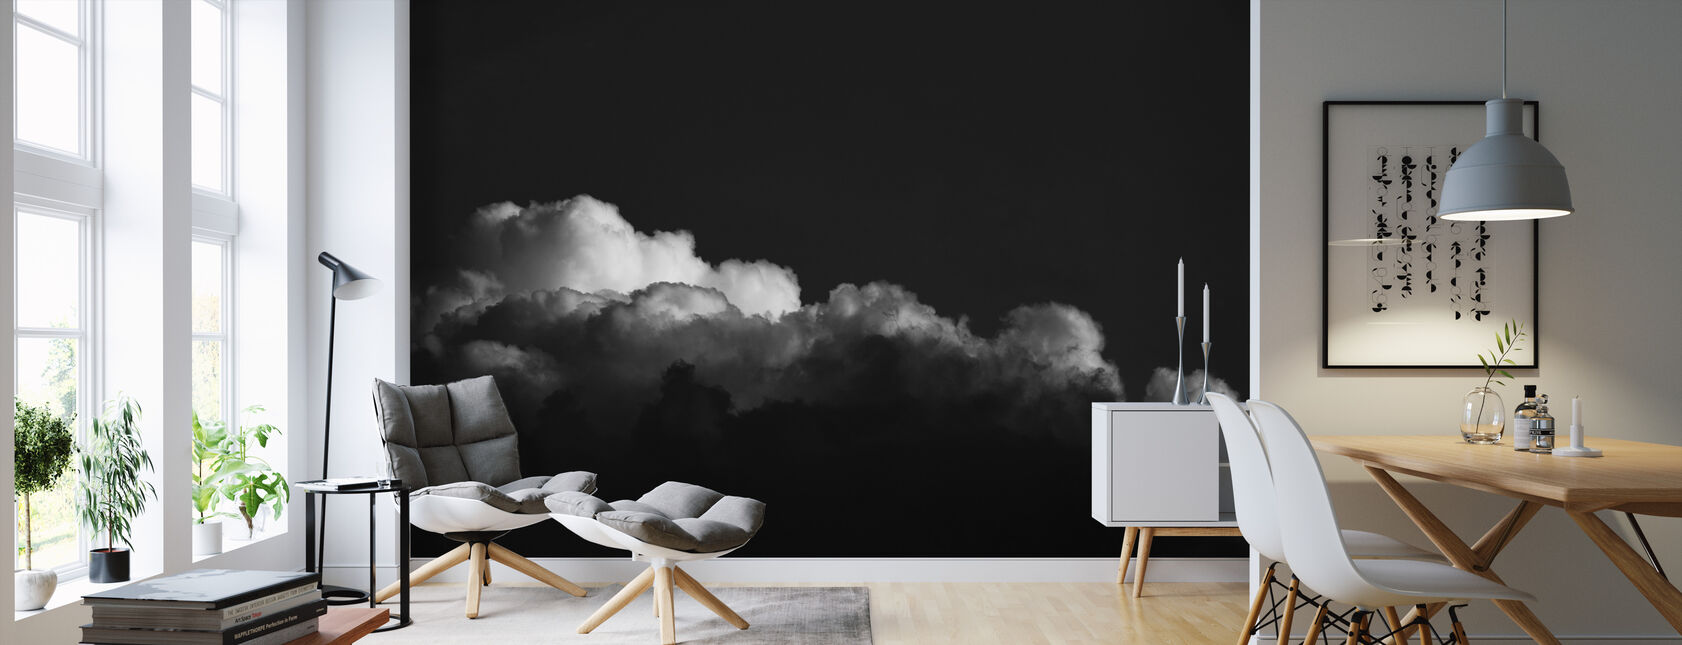 Gradient Cloud BW - Wallpaper - Living Room